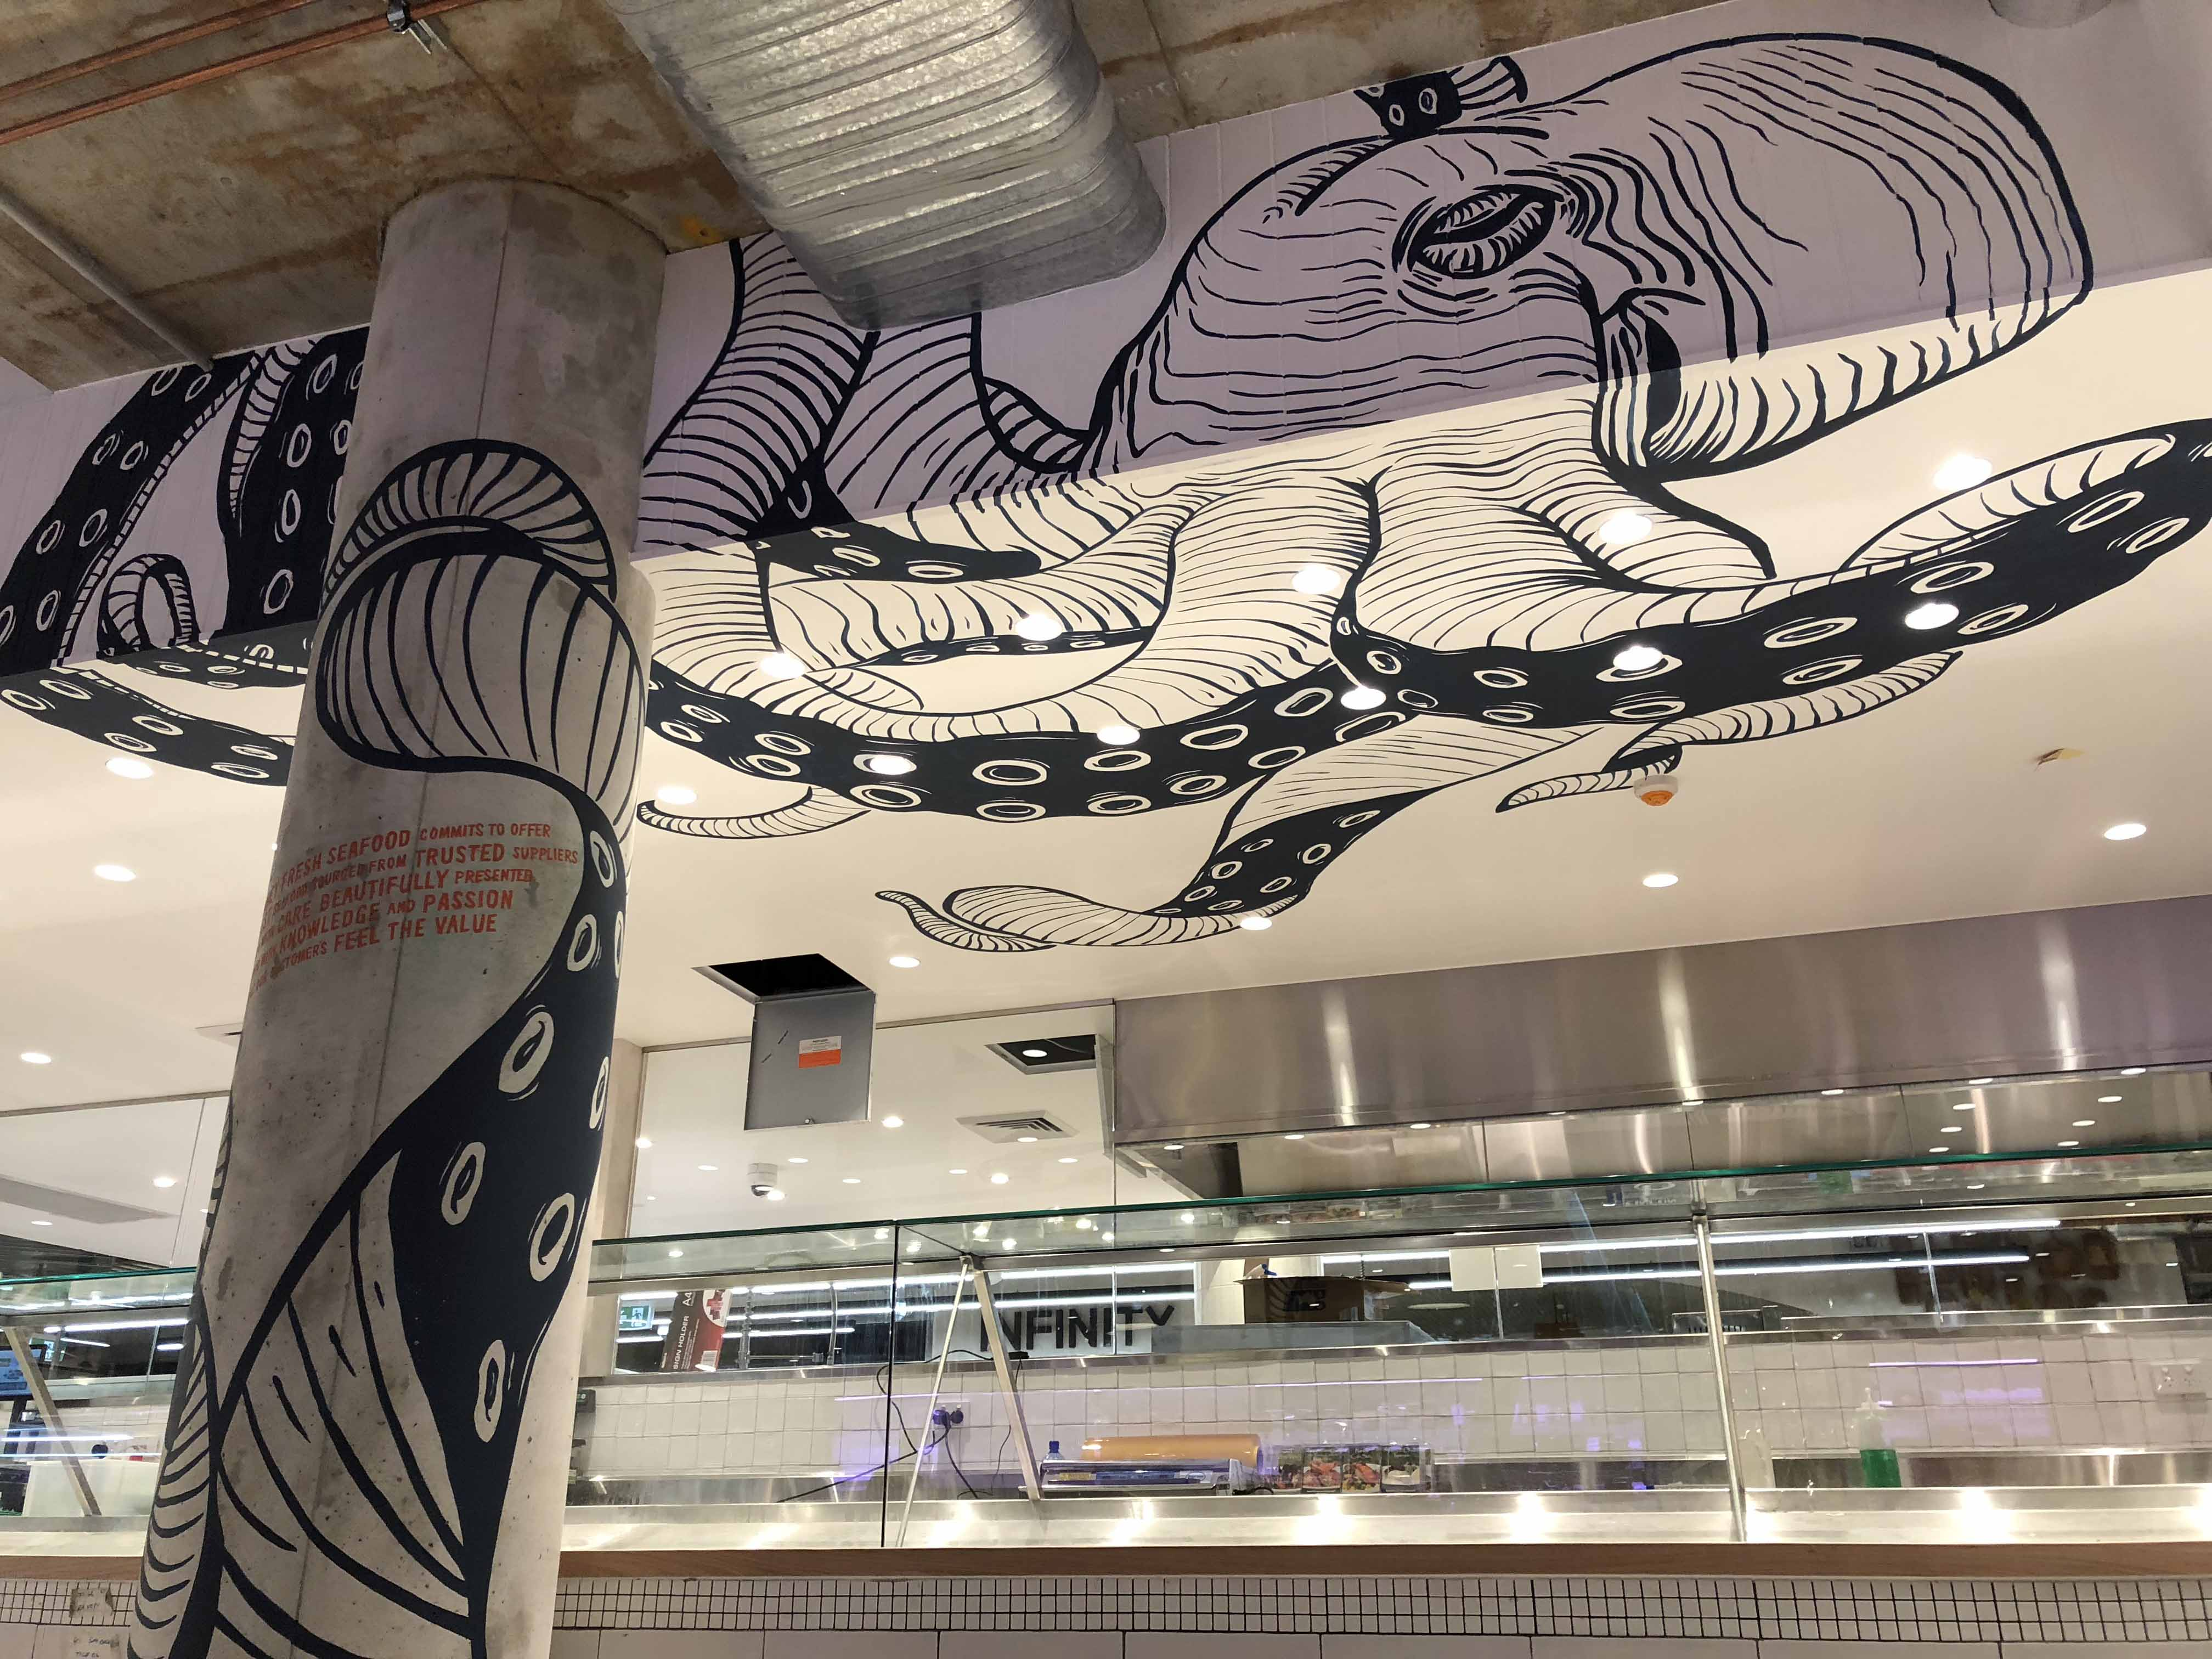 the-art-of-wall-sydney-fresh-seafood-octopus-mural-2